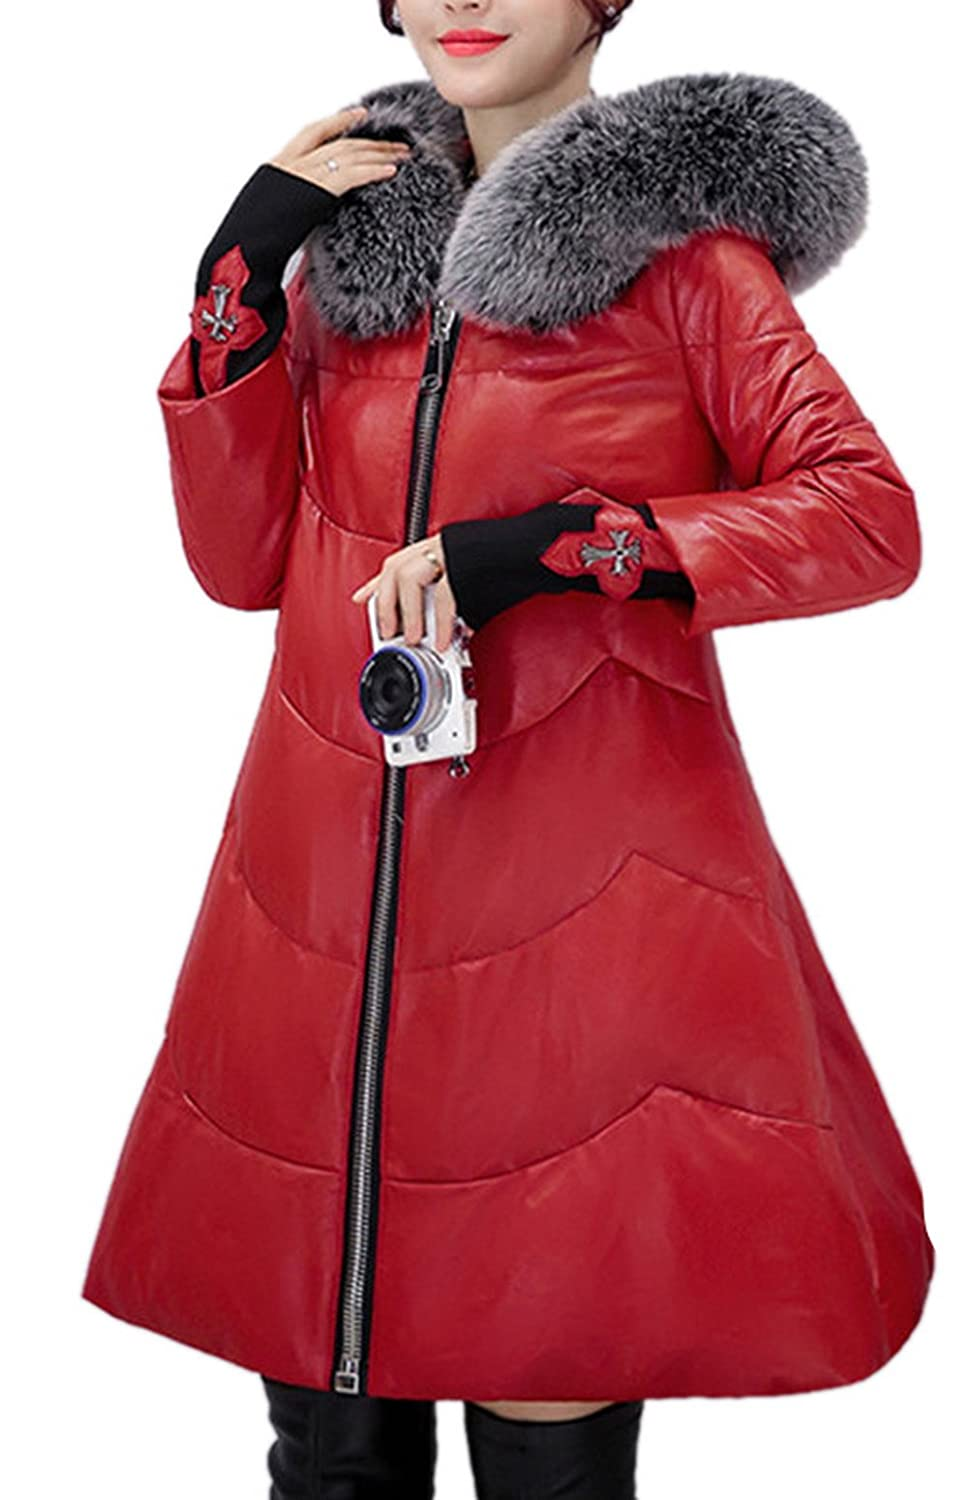 Allbebe Women's Faux Fur Collar Hooded Down Jacket Quilted Leather Coat Parka